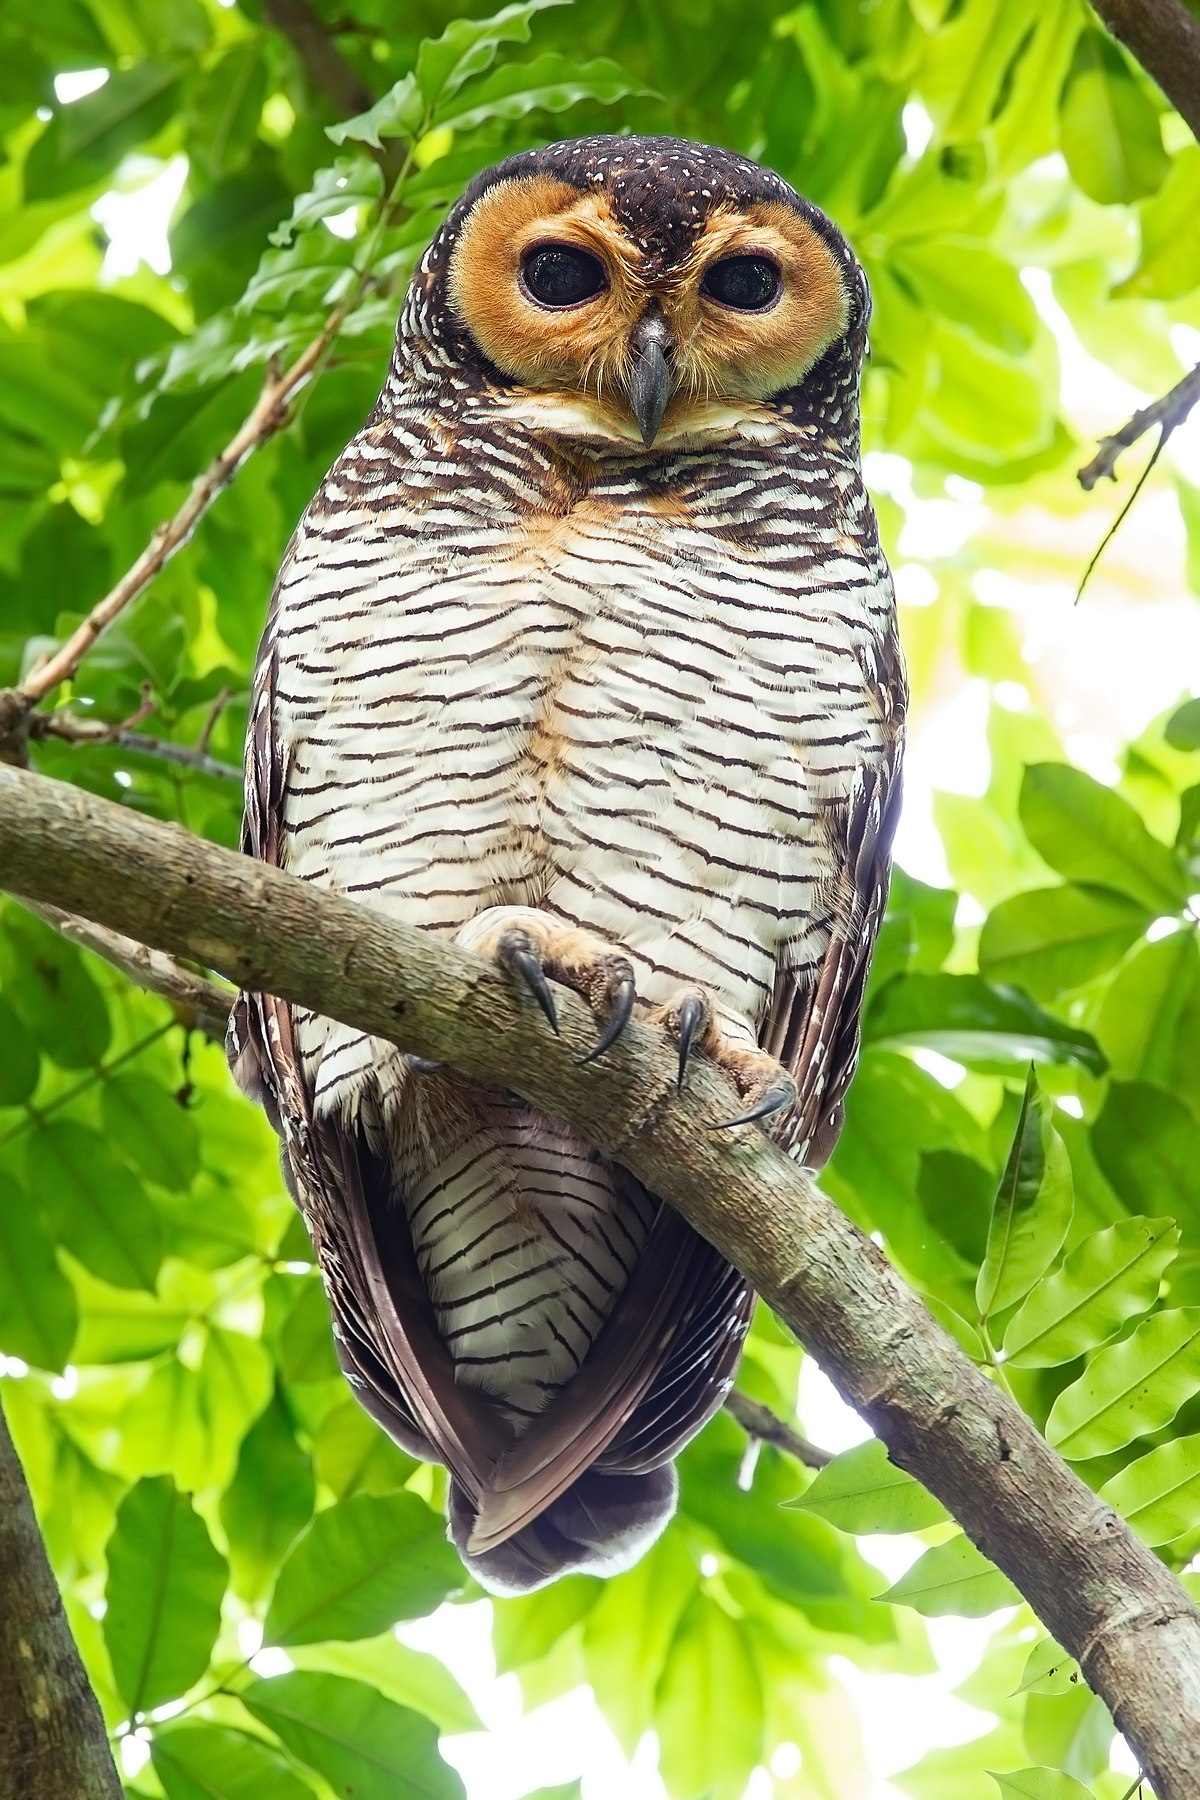 Spotted wood owl - Wikipedia